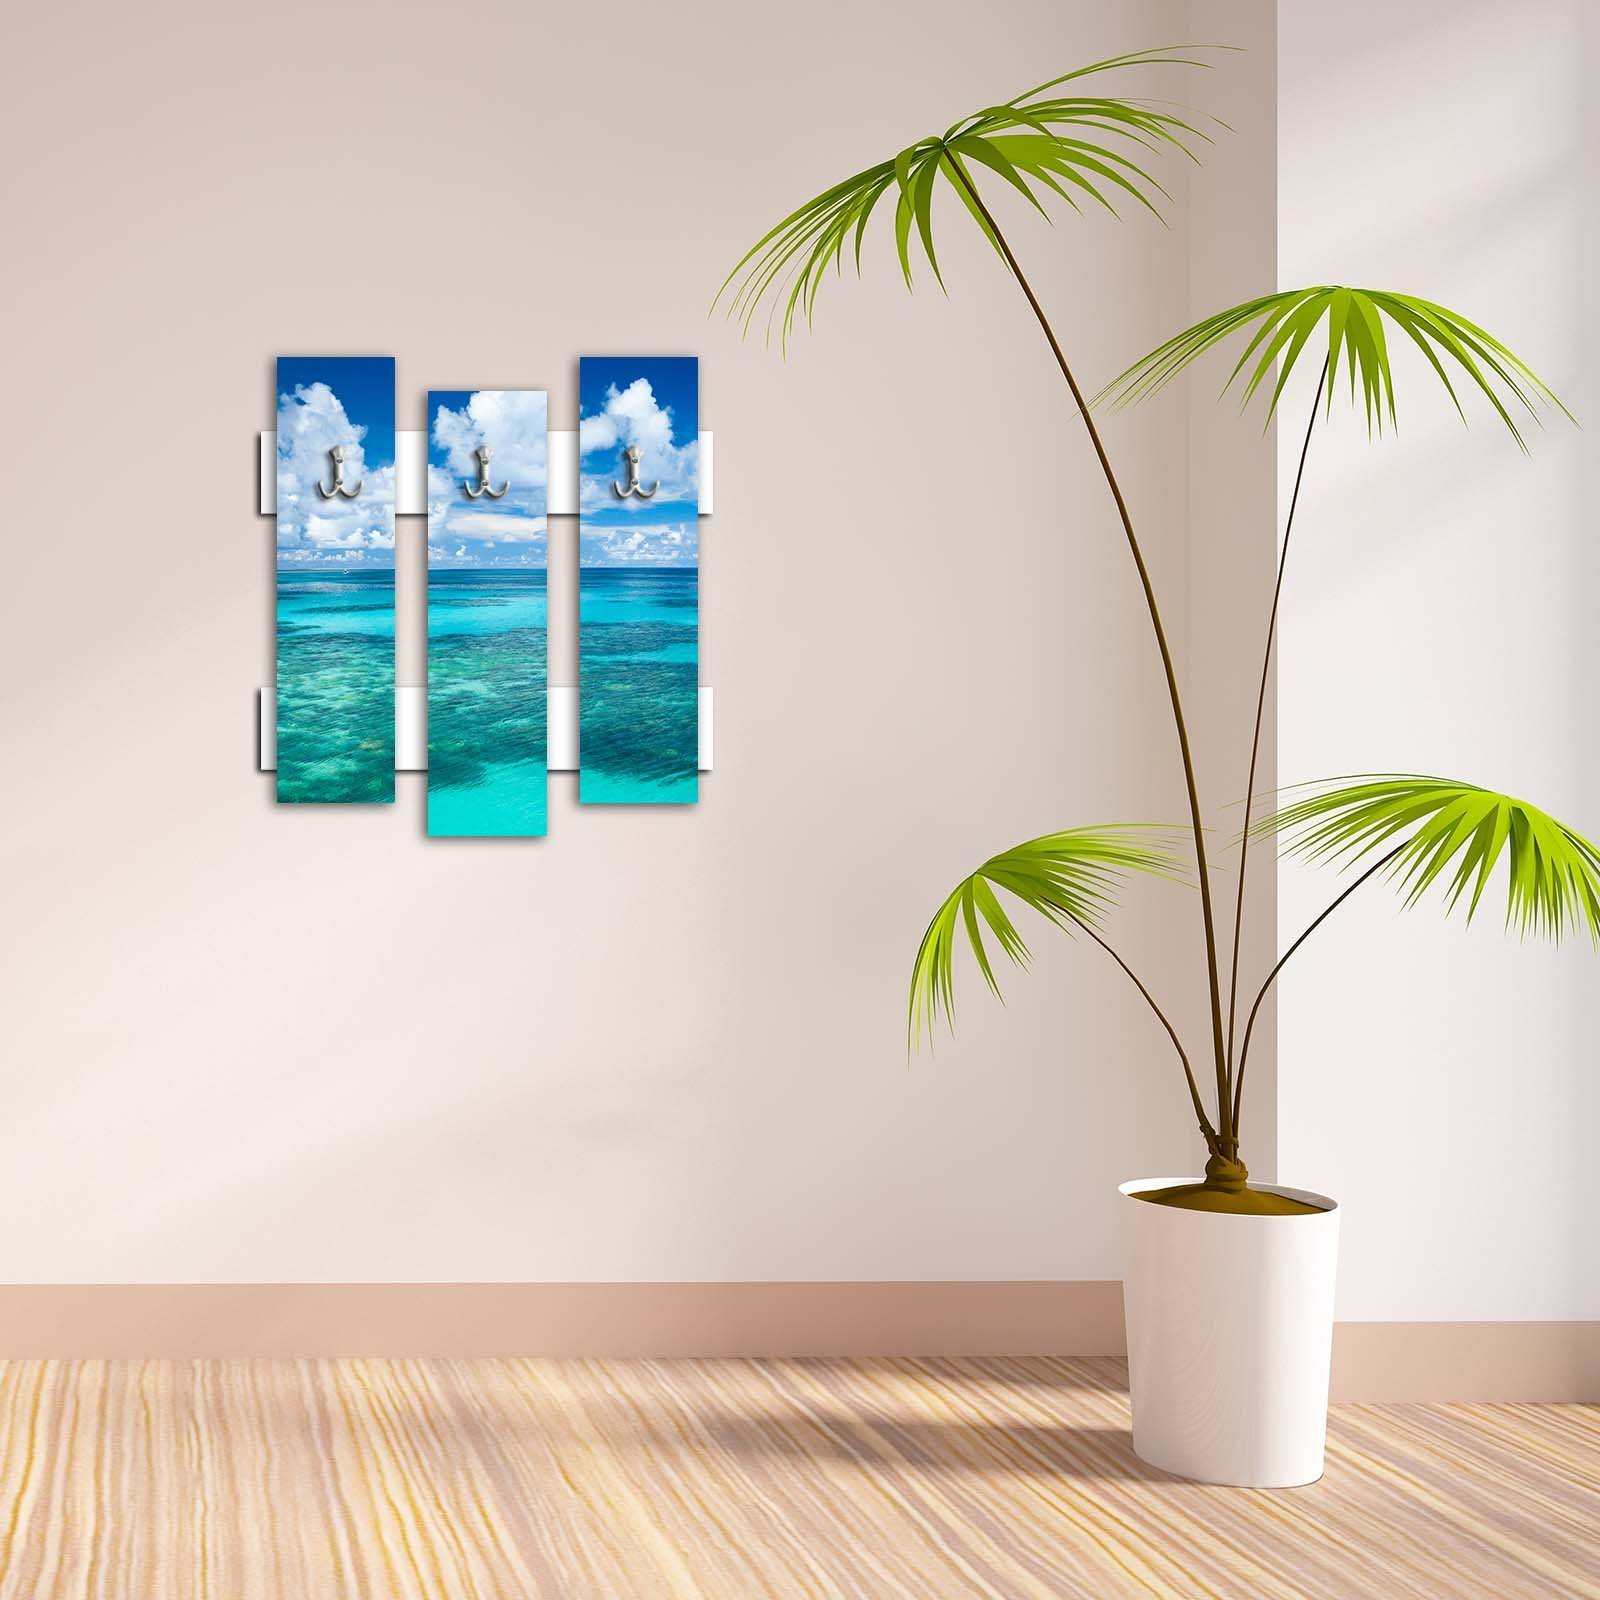 Decorative Wall Hook 3 Pcs Metal Key Holder 100% MDF Mounted Hanging Home Decor, Perfect for Foyers Entryway, Door Coats Hats Towels Scarfs Bags Sea Seaside Sky Cloud Holiday Sun Beach Water